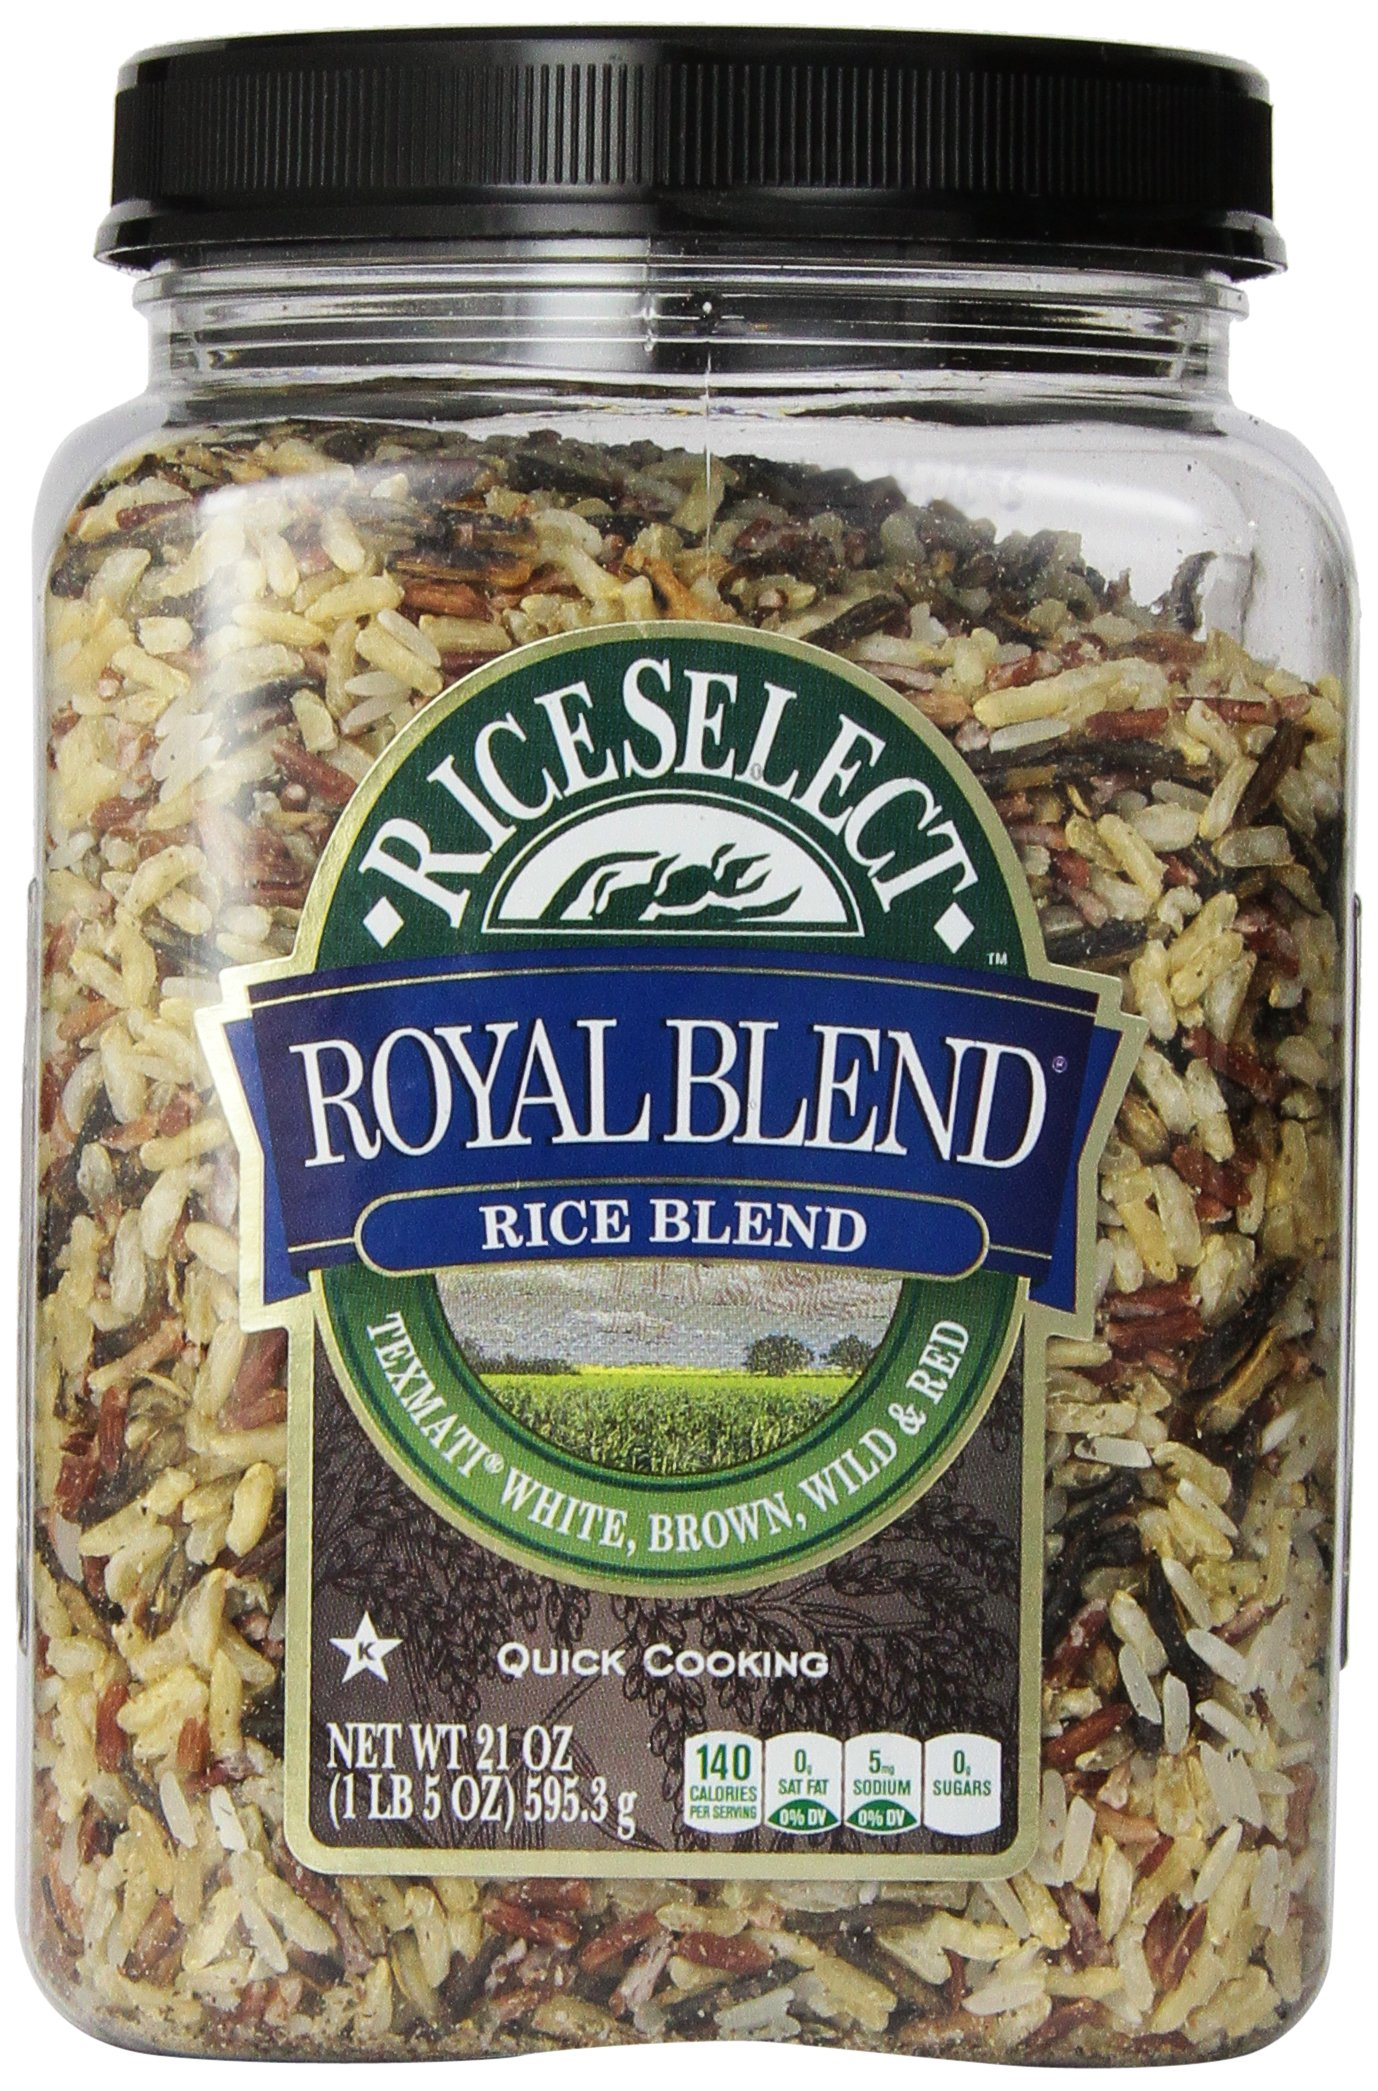 Amazon.com : RiceSelect Organic Texmati Brown Rice, 32